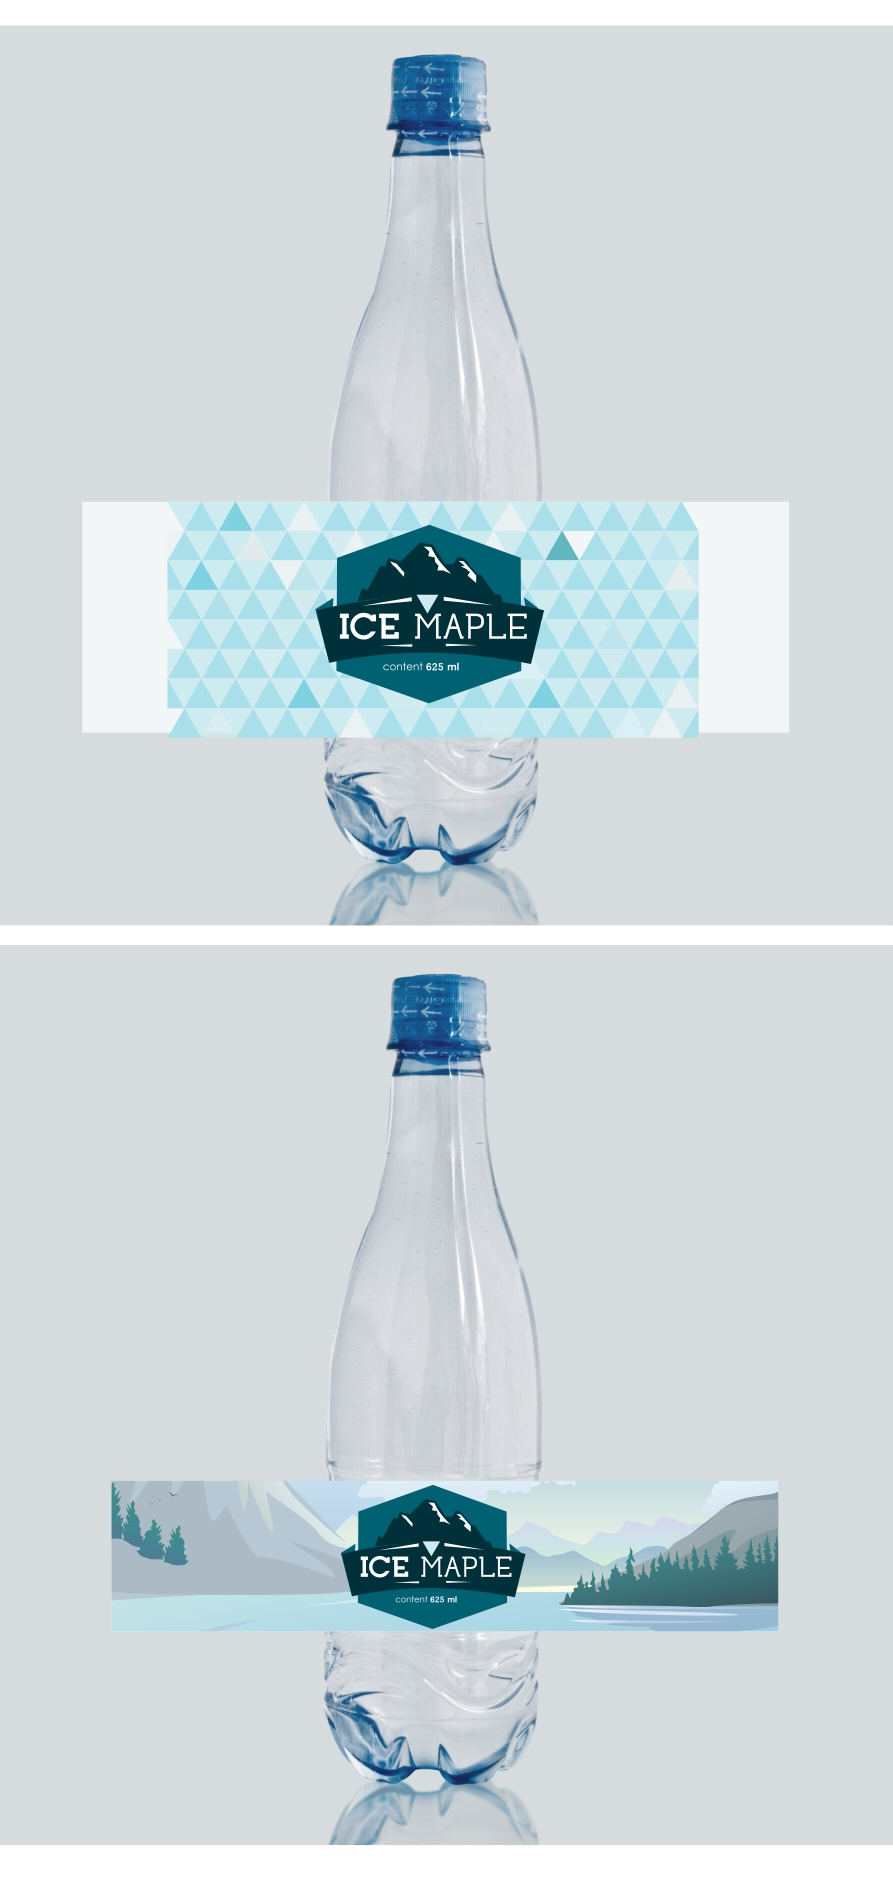 Packaging Design by Private User - Entry No. 38 in the Packaging Design Contest Unique Label/Packaging Design Wanted for Premium Bottled Water (Maple Ice).